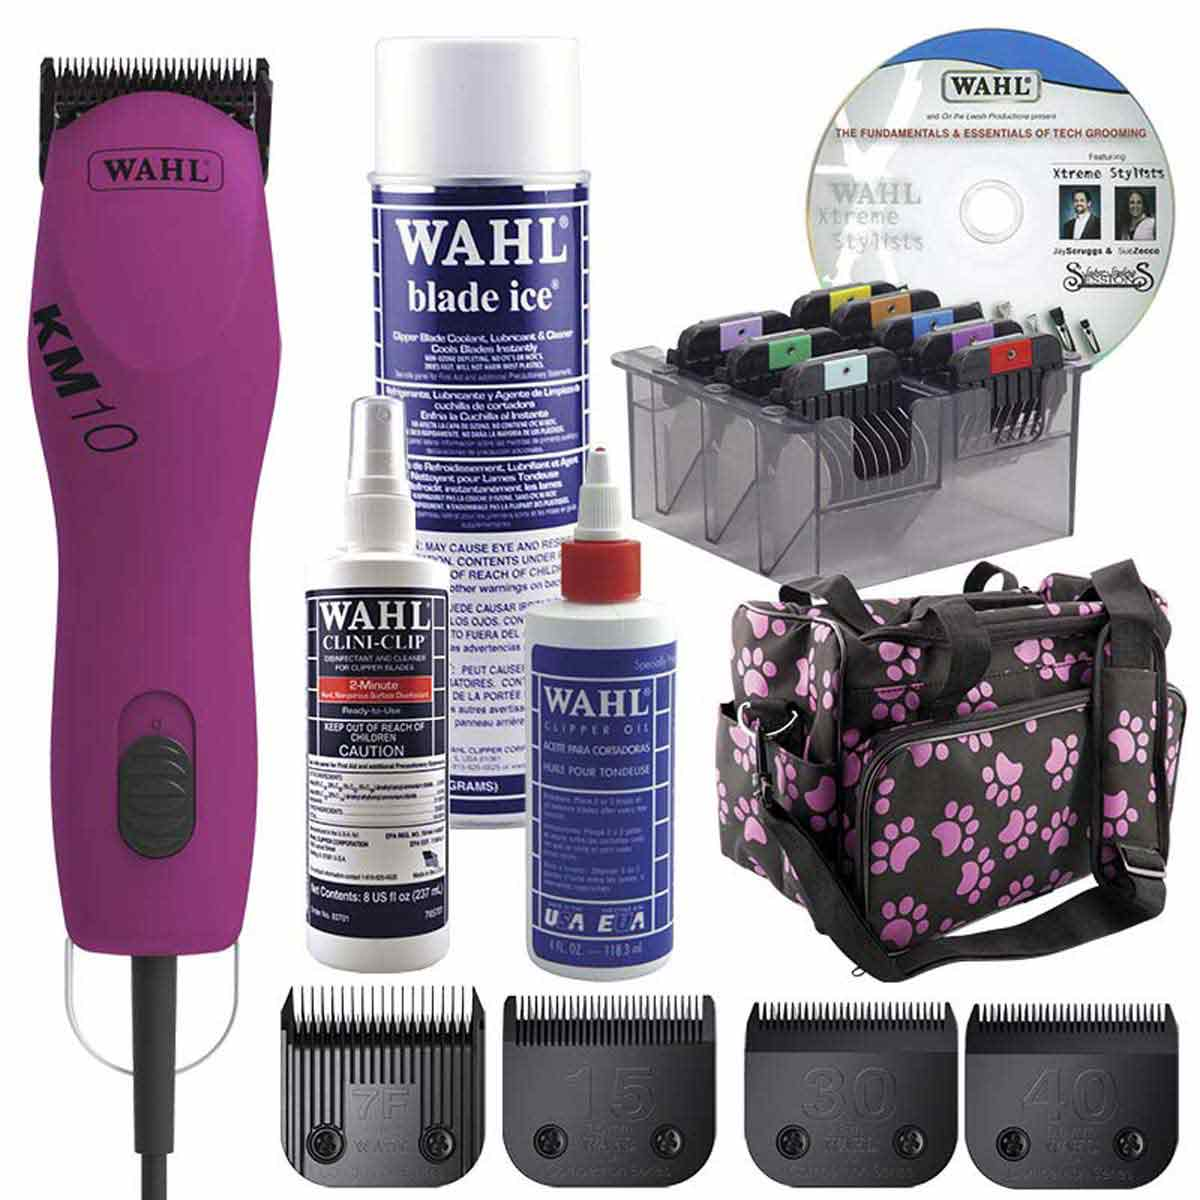 Berry Wahl KM10 Clipper Grooming Student Kit